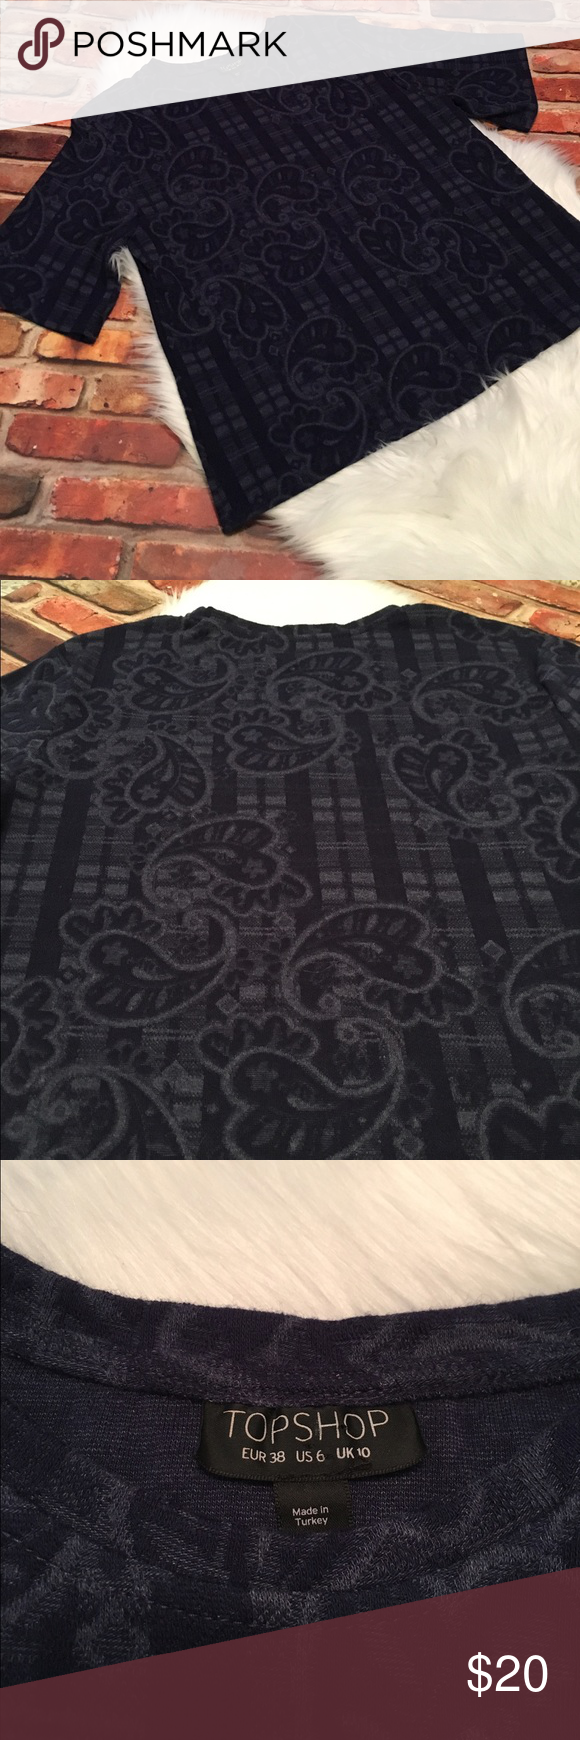 Topshop Paisley Boxy Half Sleeve Tee Size 6 Preowned Topshop Paisley Boxy Half Sleeve Tee/Top.  Size 6.  Beautiful Tee.  This has been preloved and is in overall excellent condition.  Navy blue paisley jacquard pattern. See all pictures as you will receive as pictured. No trades/no holds.  All offers (lowest ?'s) via make offer button only please (reasonable offers). Thanks for looking and Happy Poshing! Topshop Tops